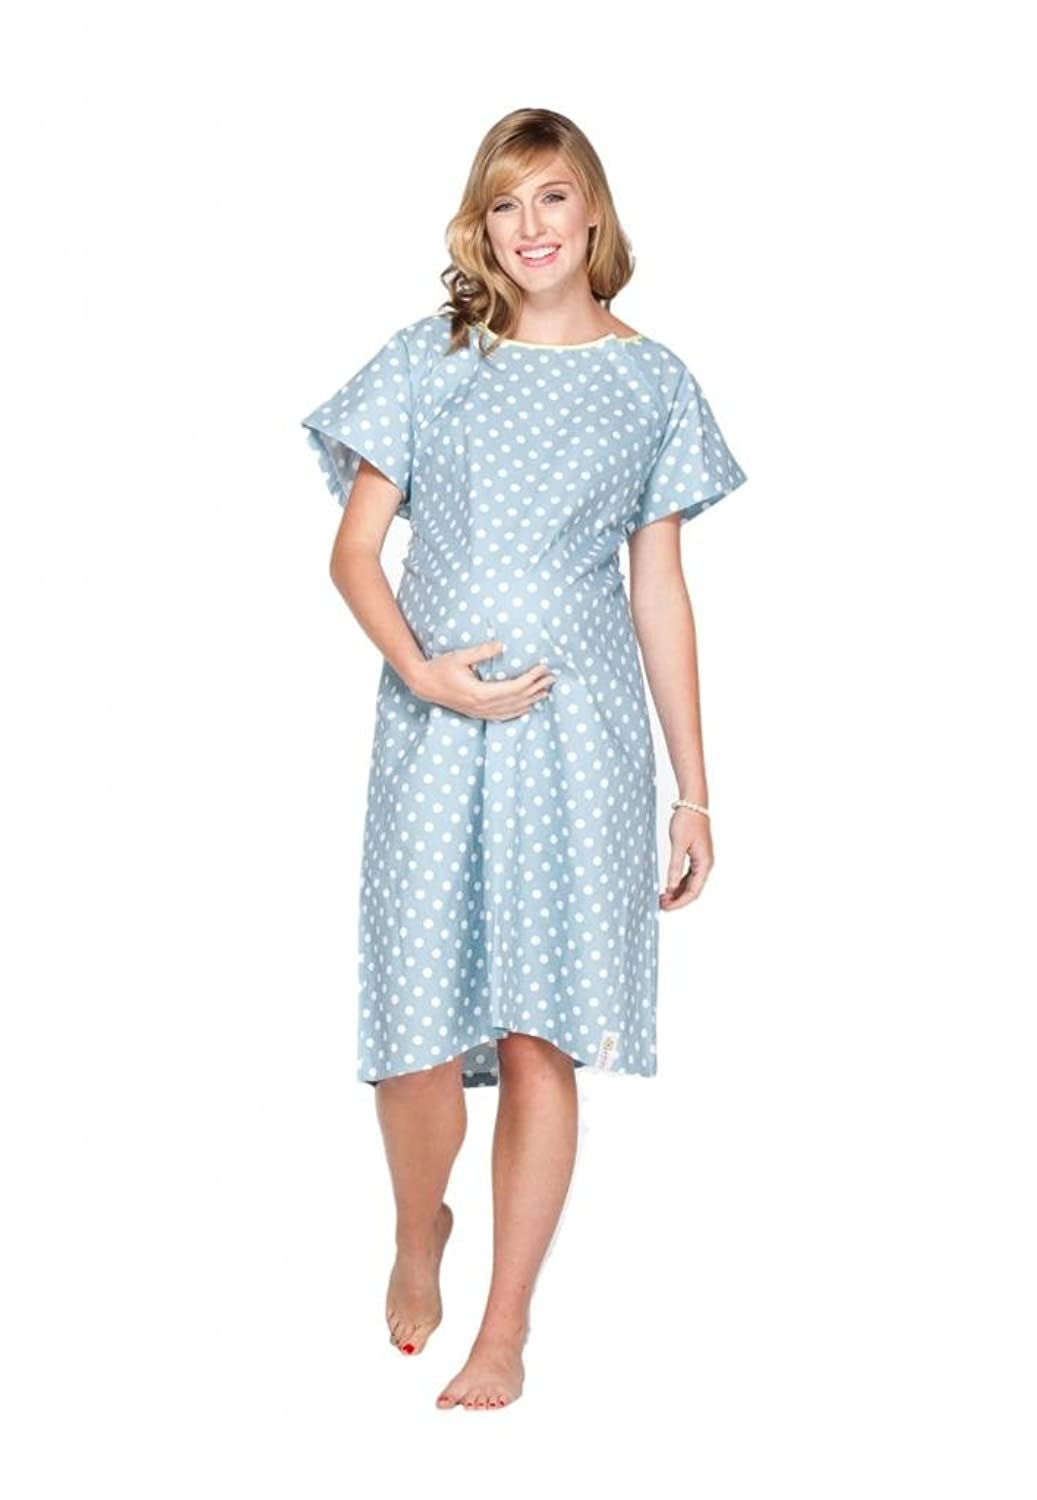 Gownies - Labor & Delivery Maternity Hospital Gown